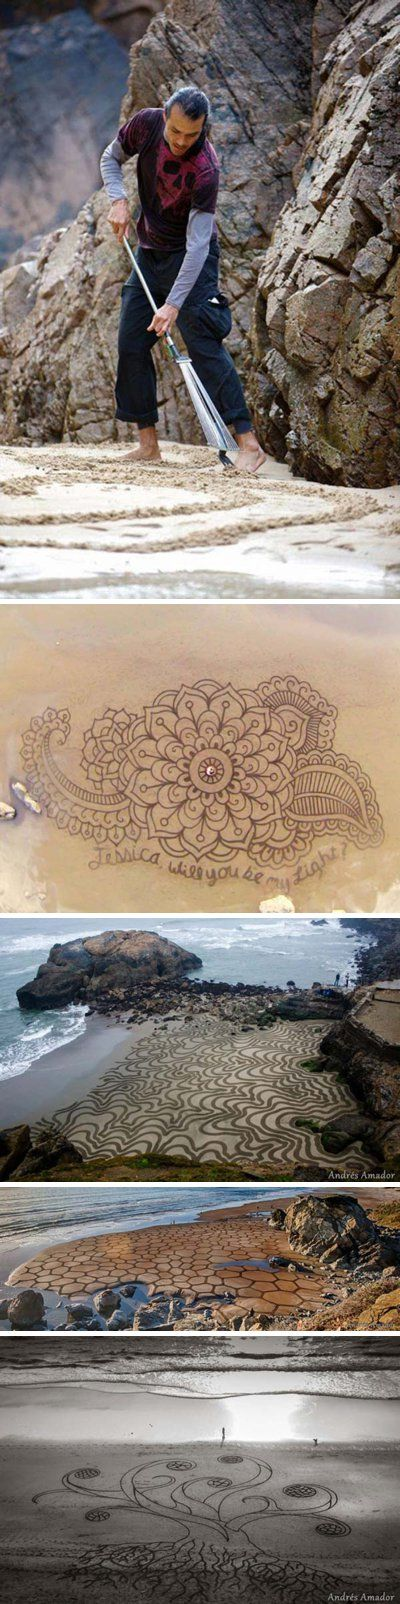 Beach art by Andres Amador *Wow, that's awesome.